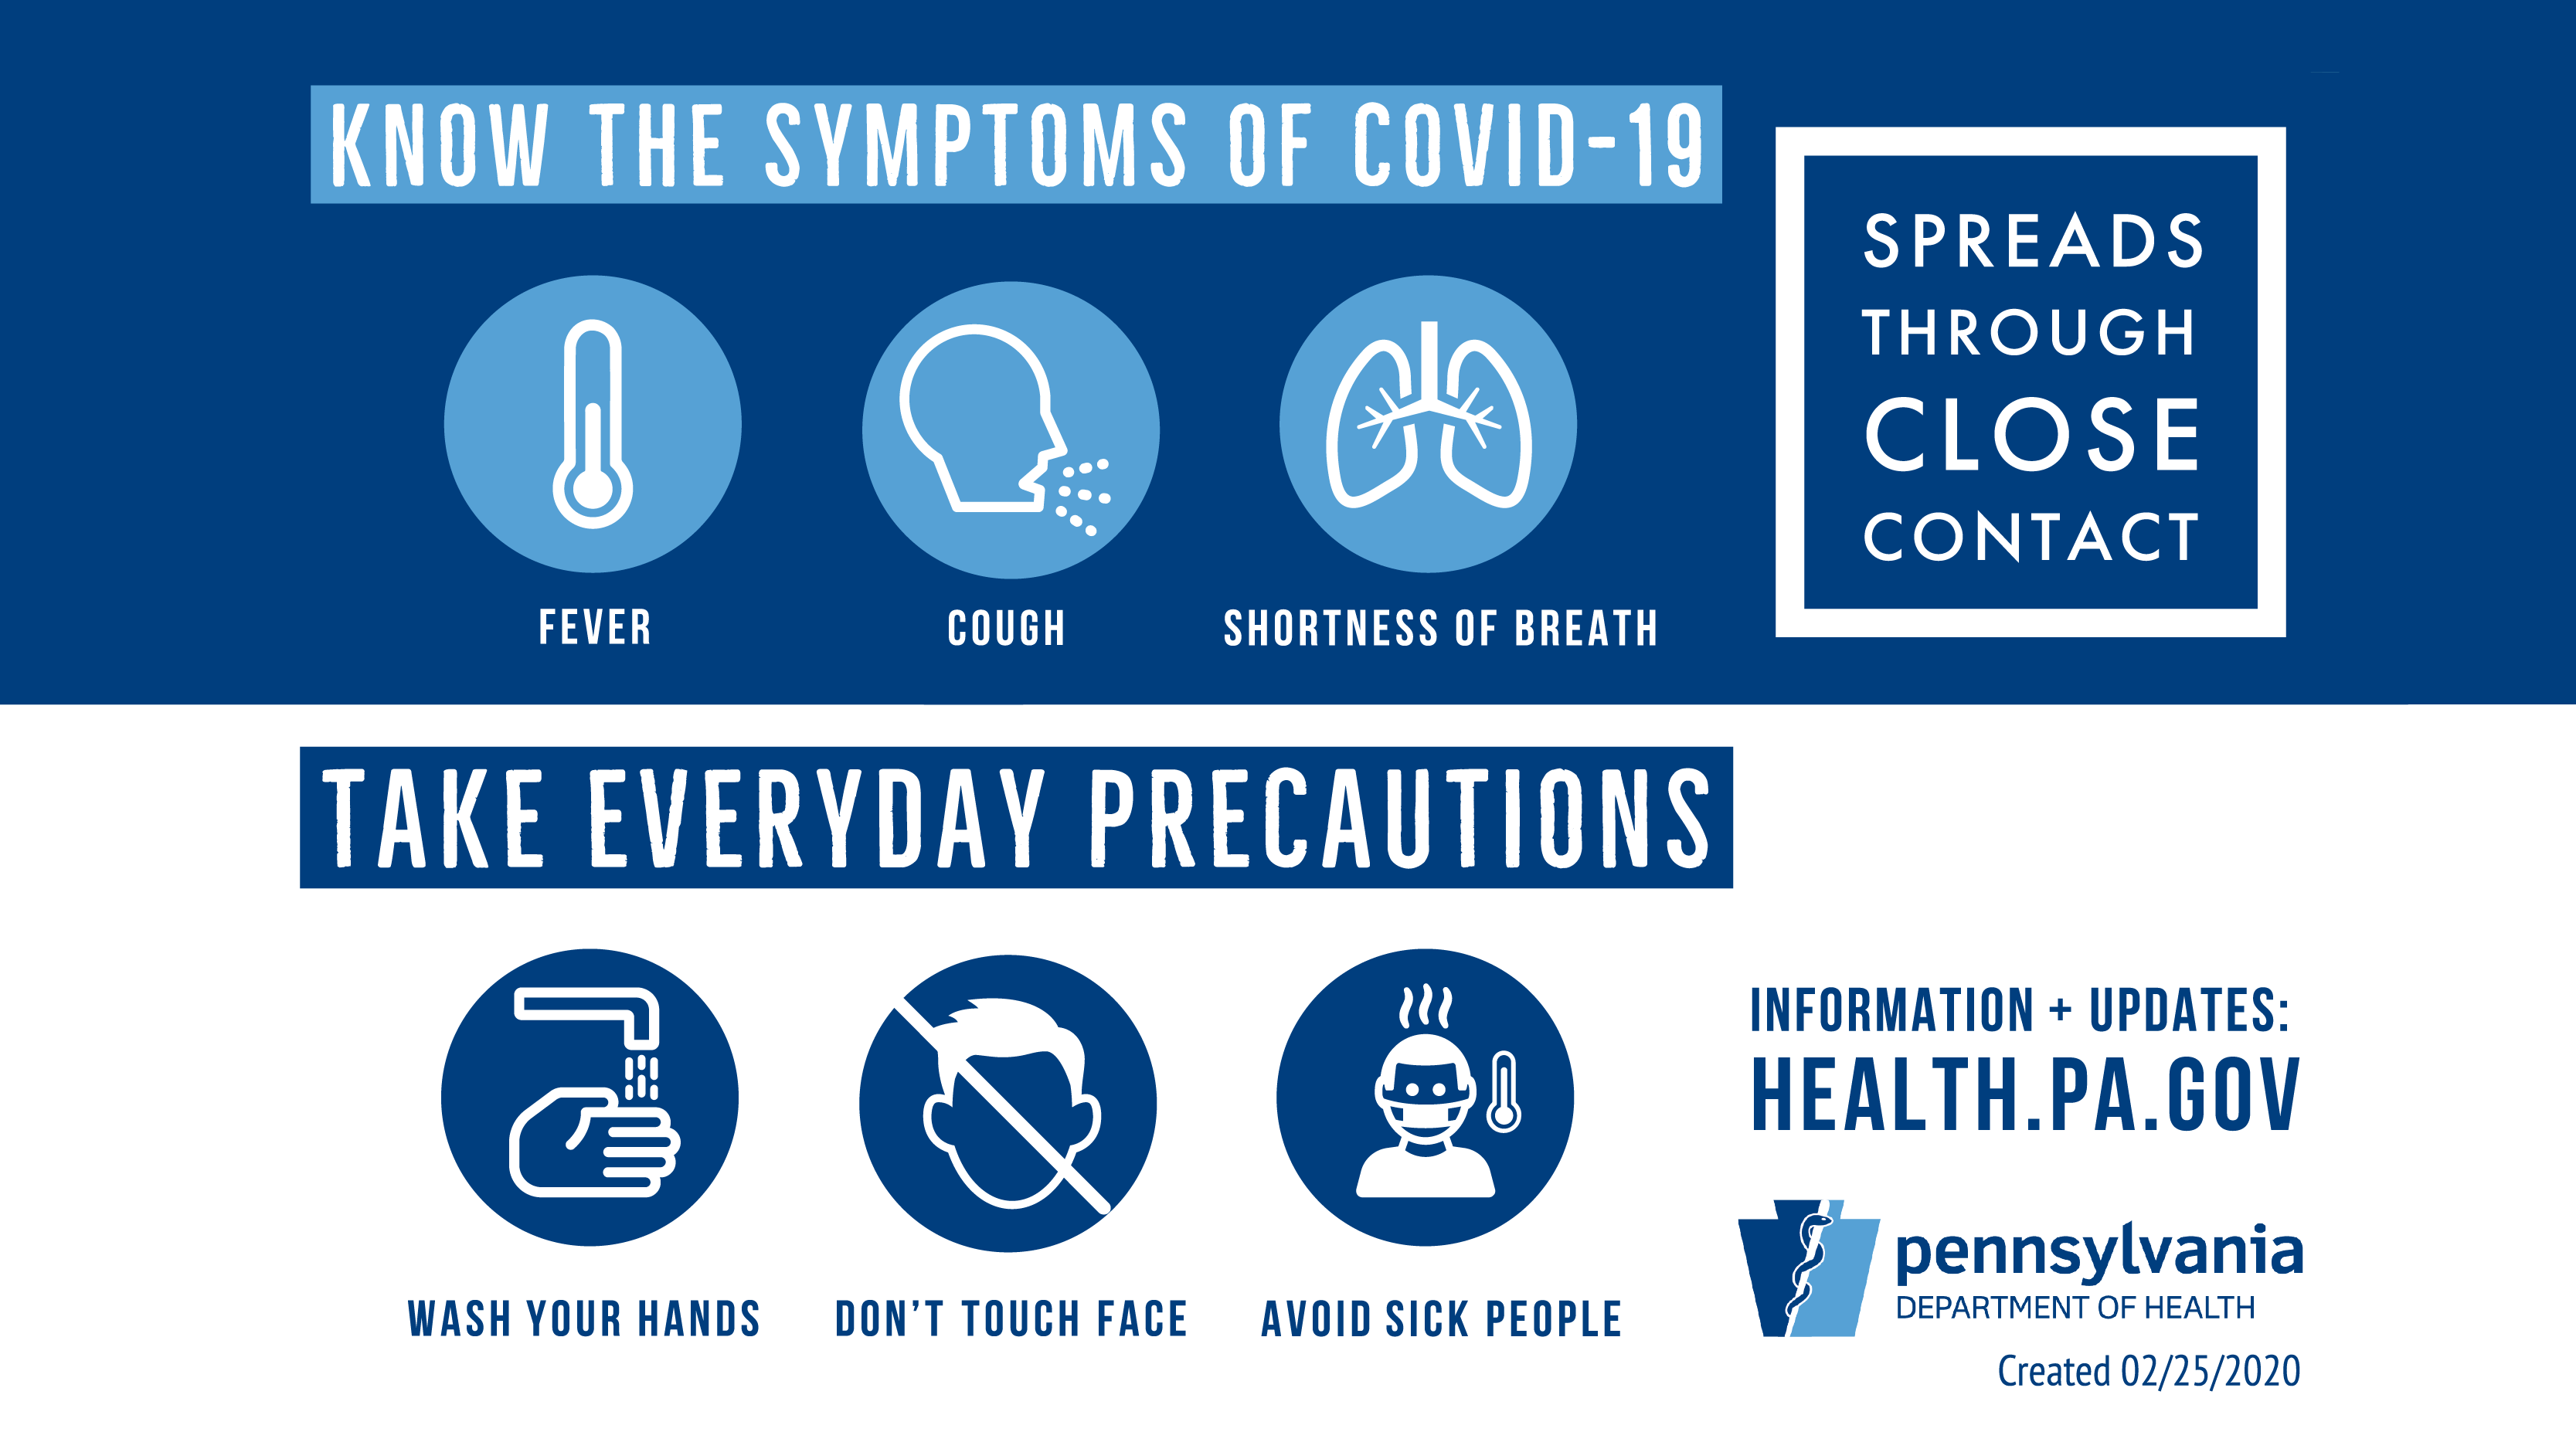 Coronavirus - symptoms and precautions - Twitter